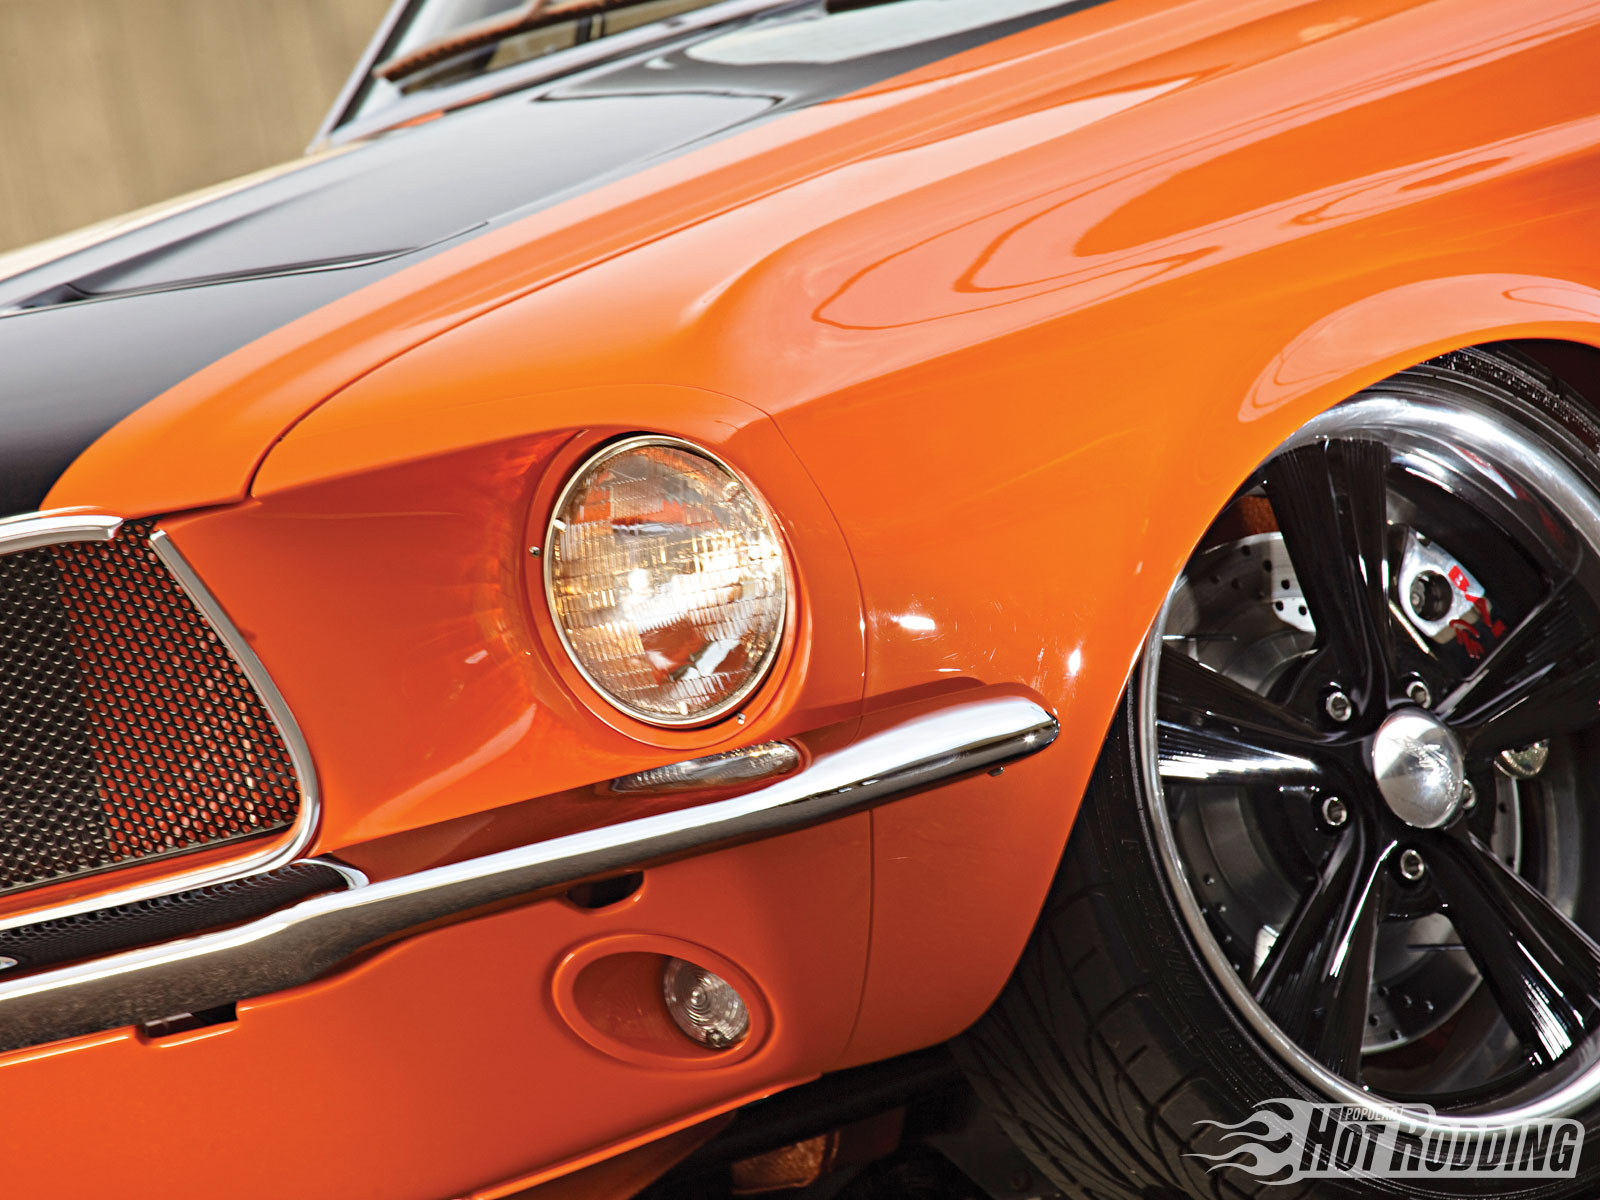 vehicles ford mustang ford muscle car classic car hot rod wallpaper